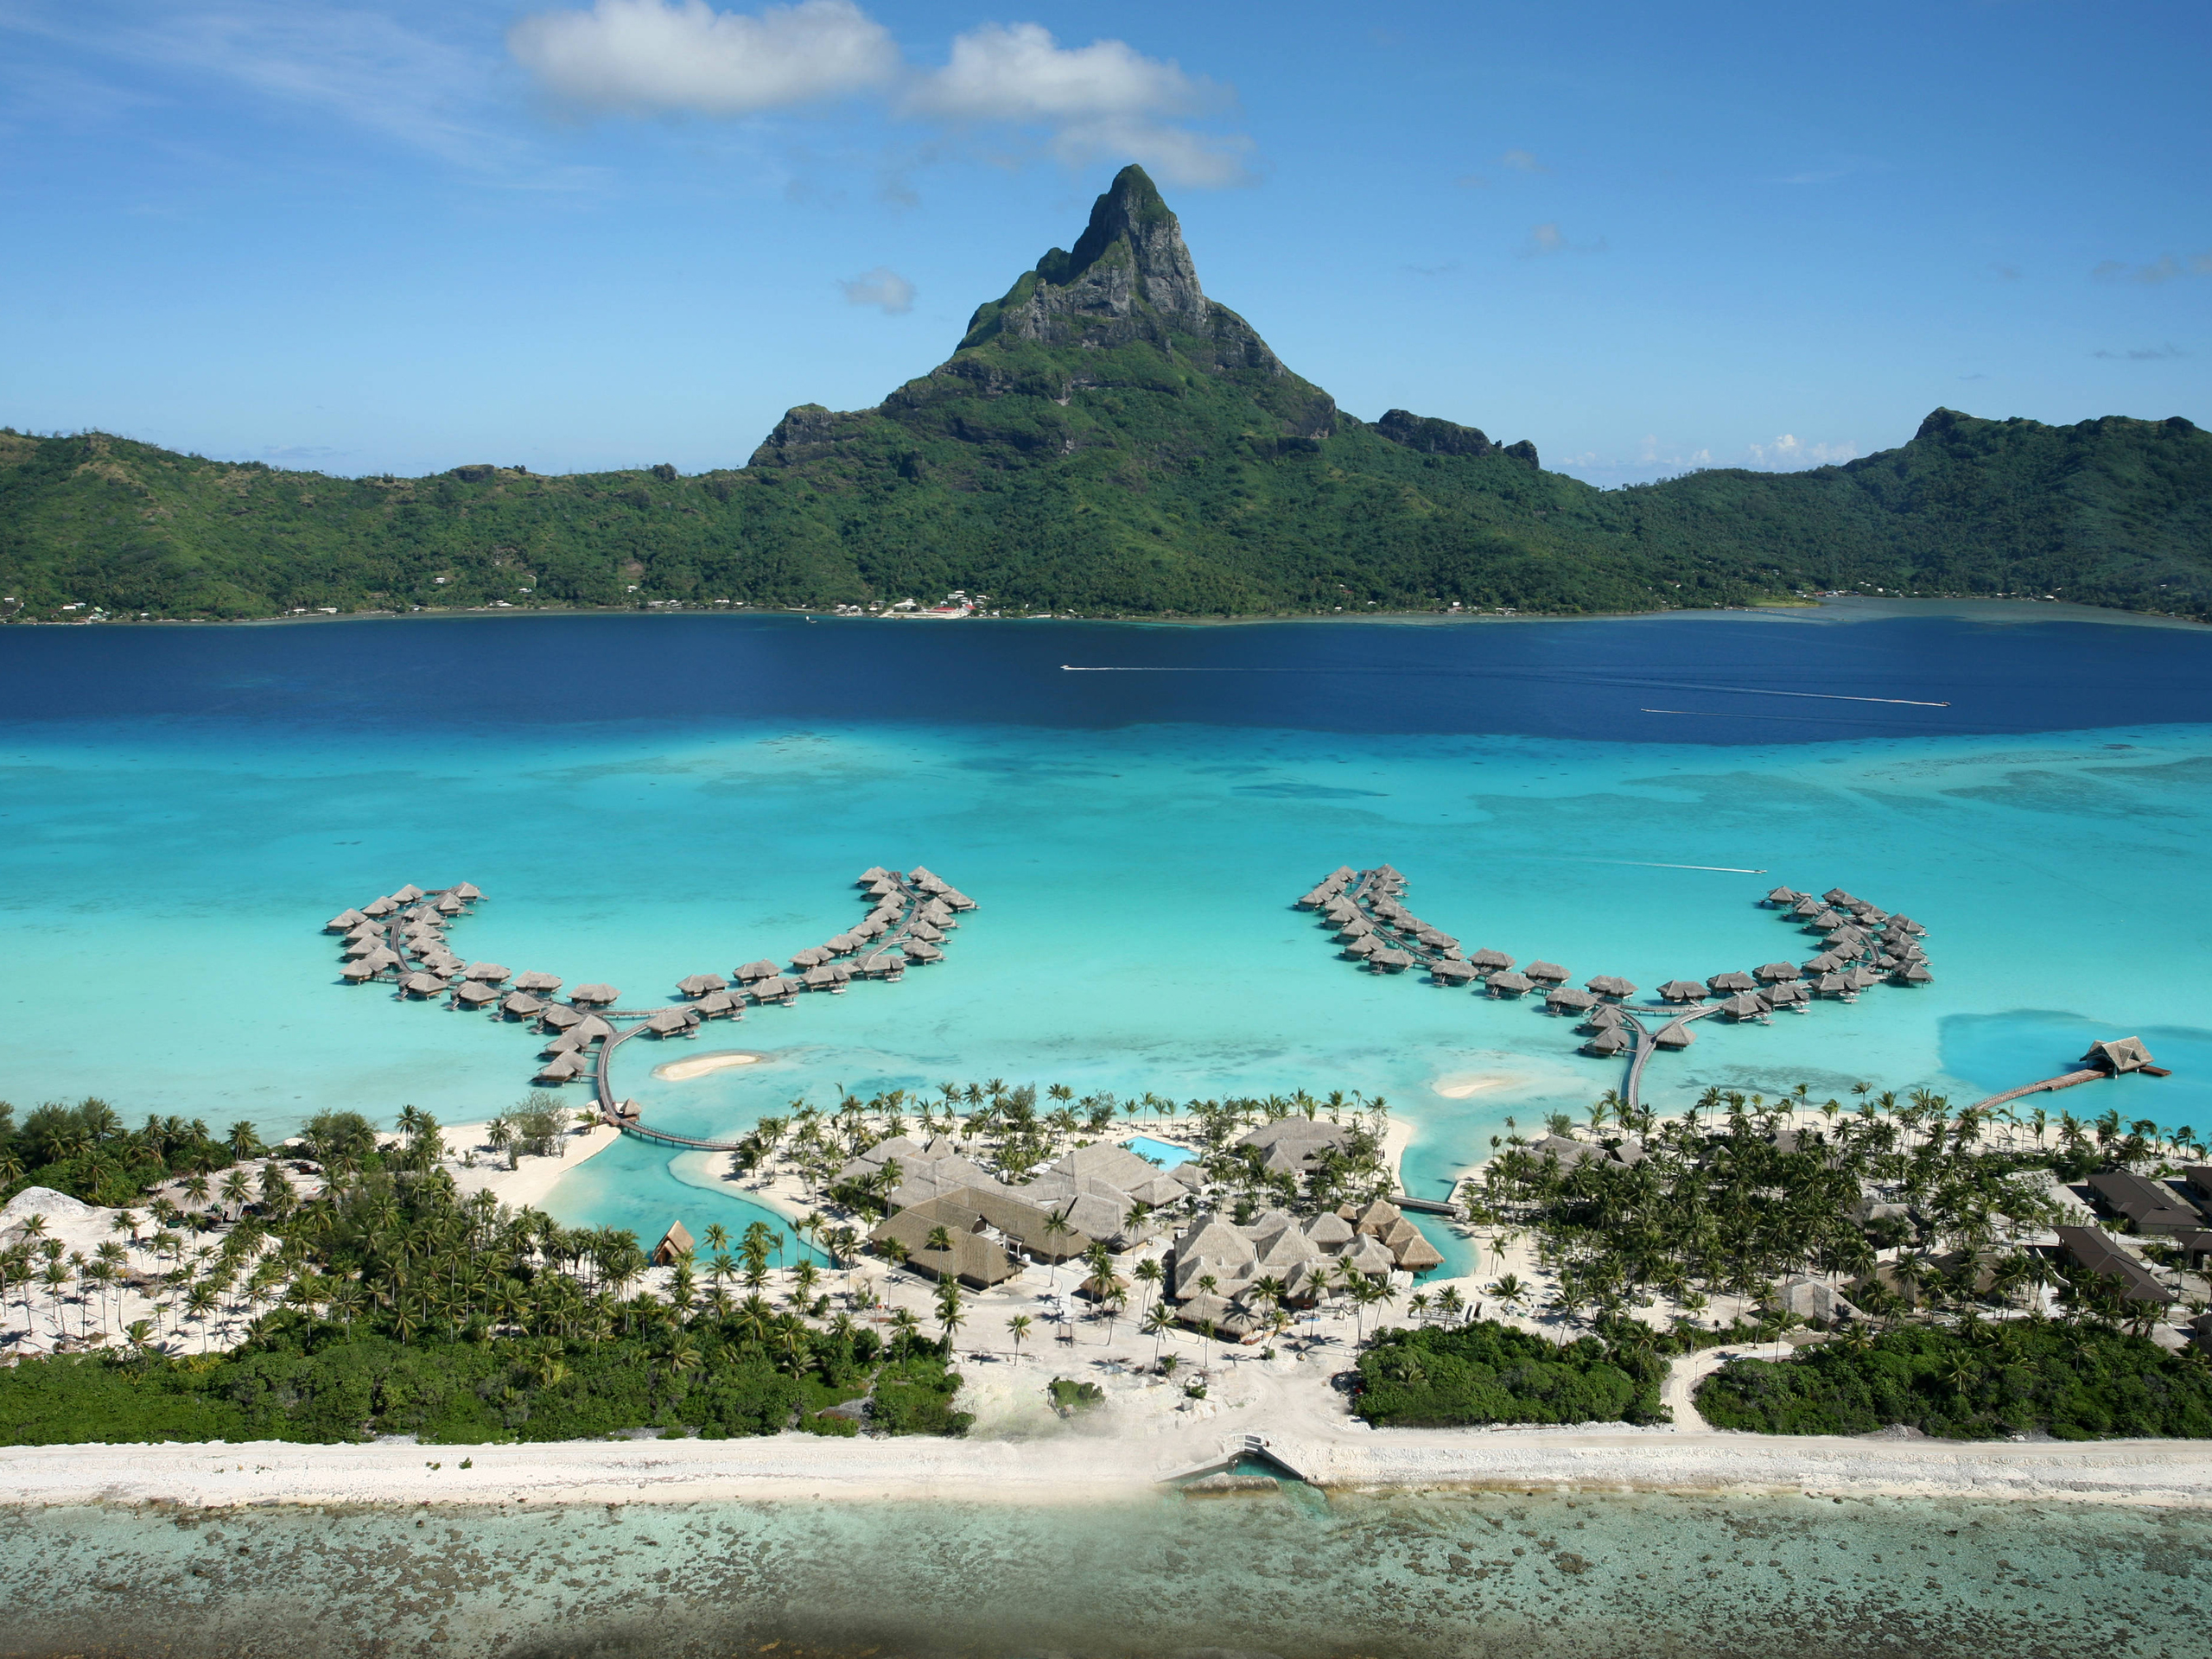 Bora Bora Wallpaper High Resolution Bora bora wallpaper high 2560x1920